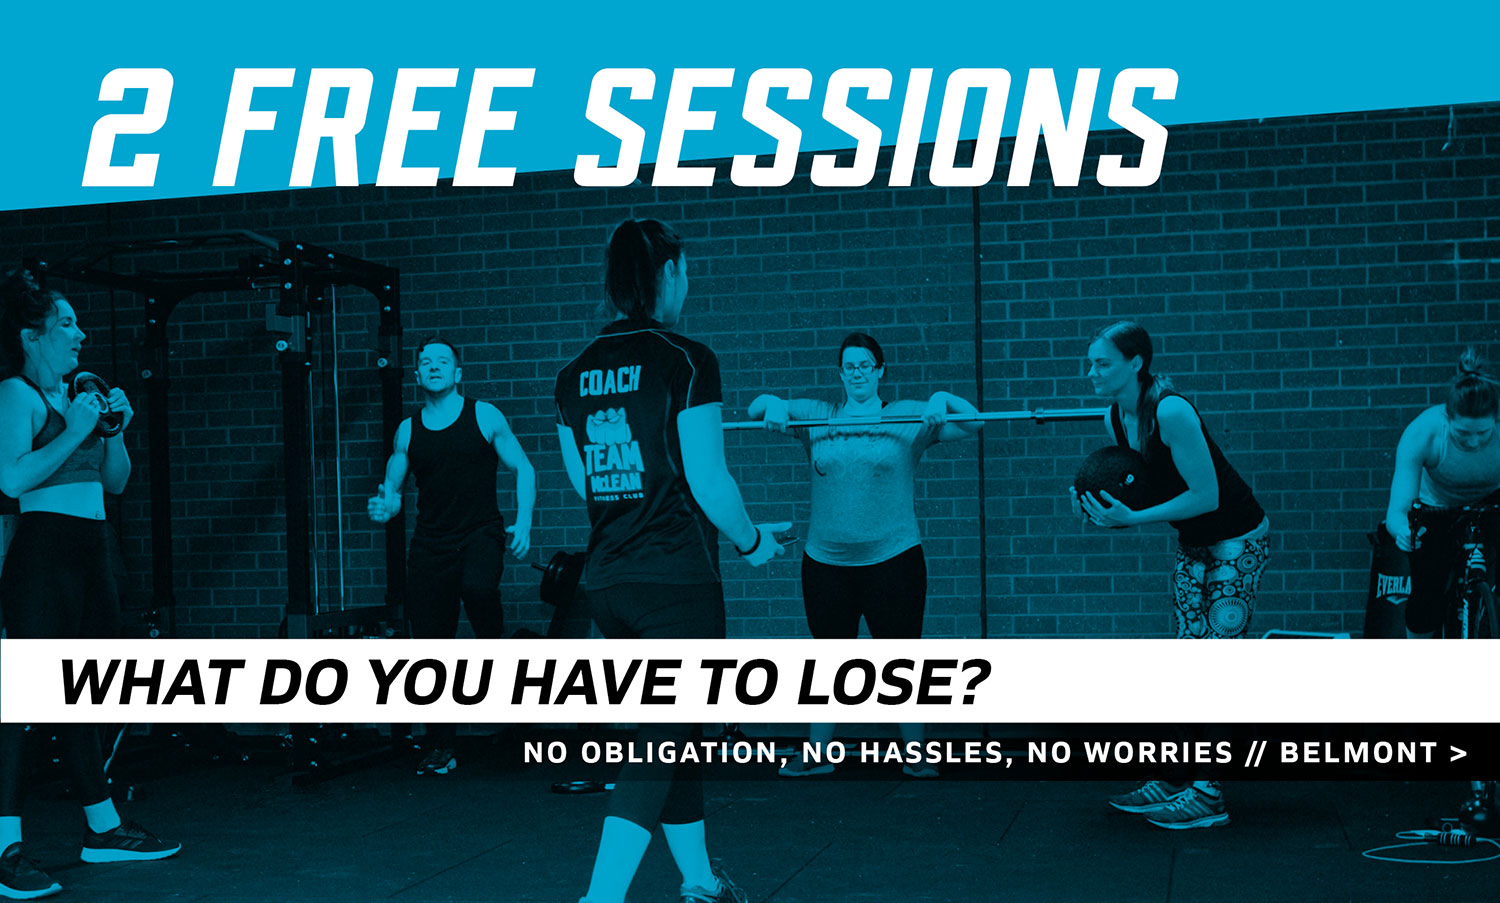 2 Free Sessions